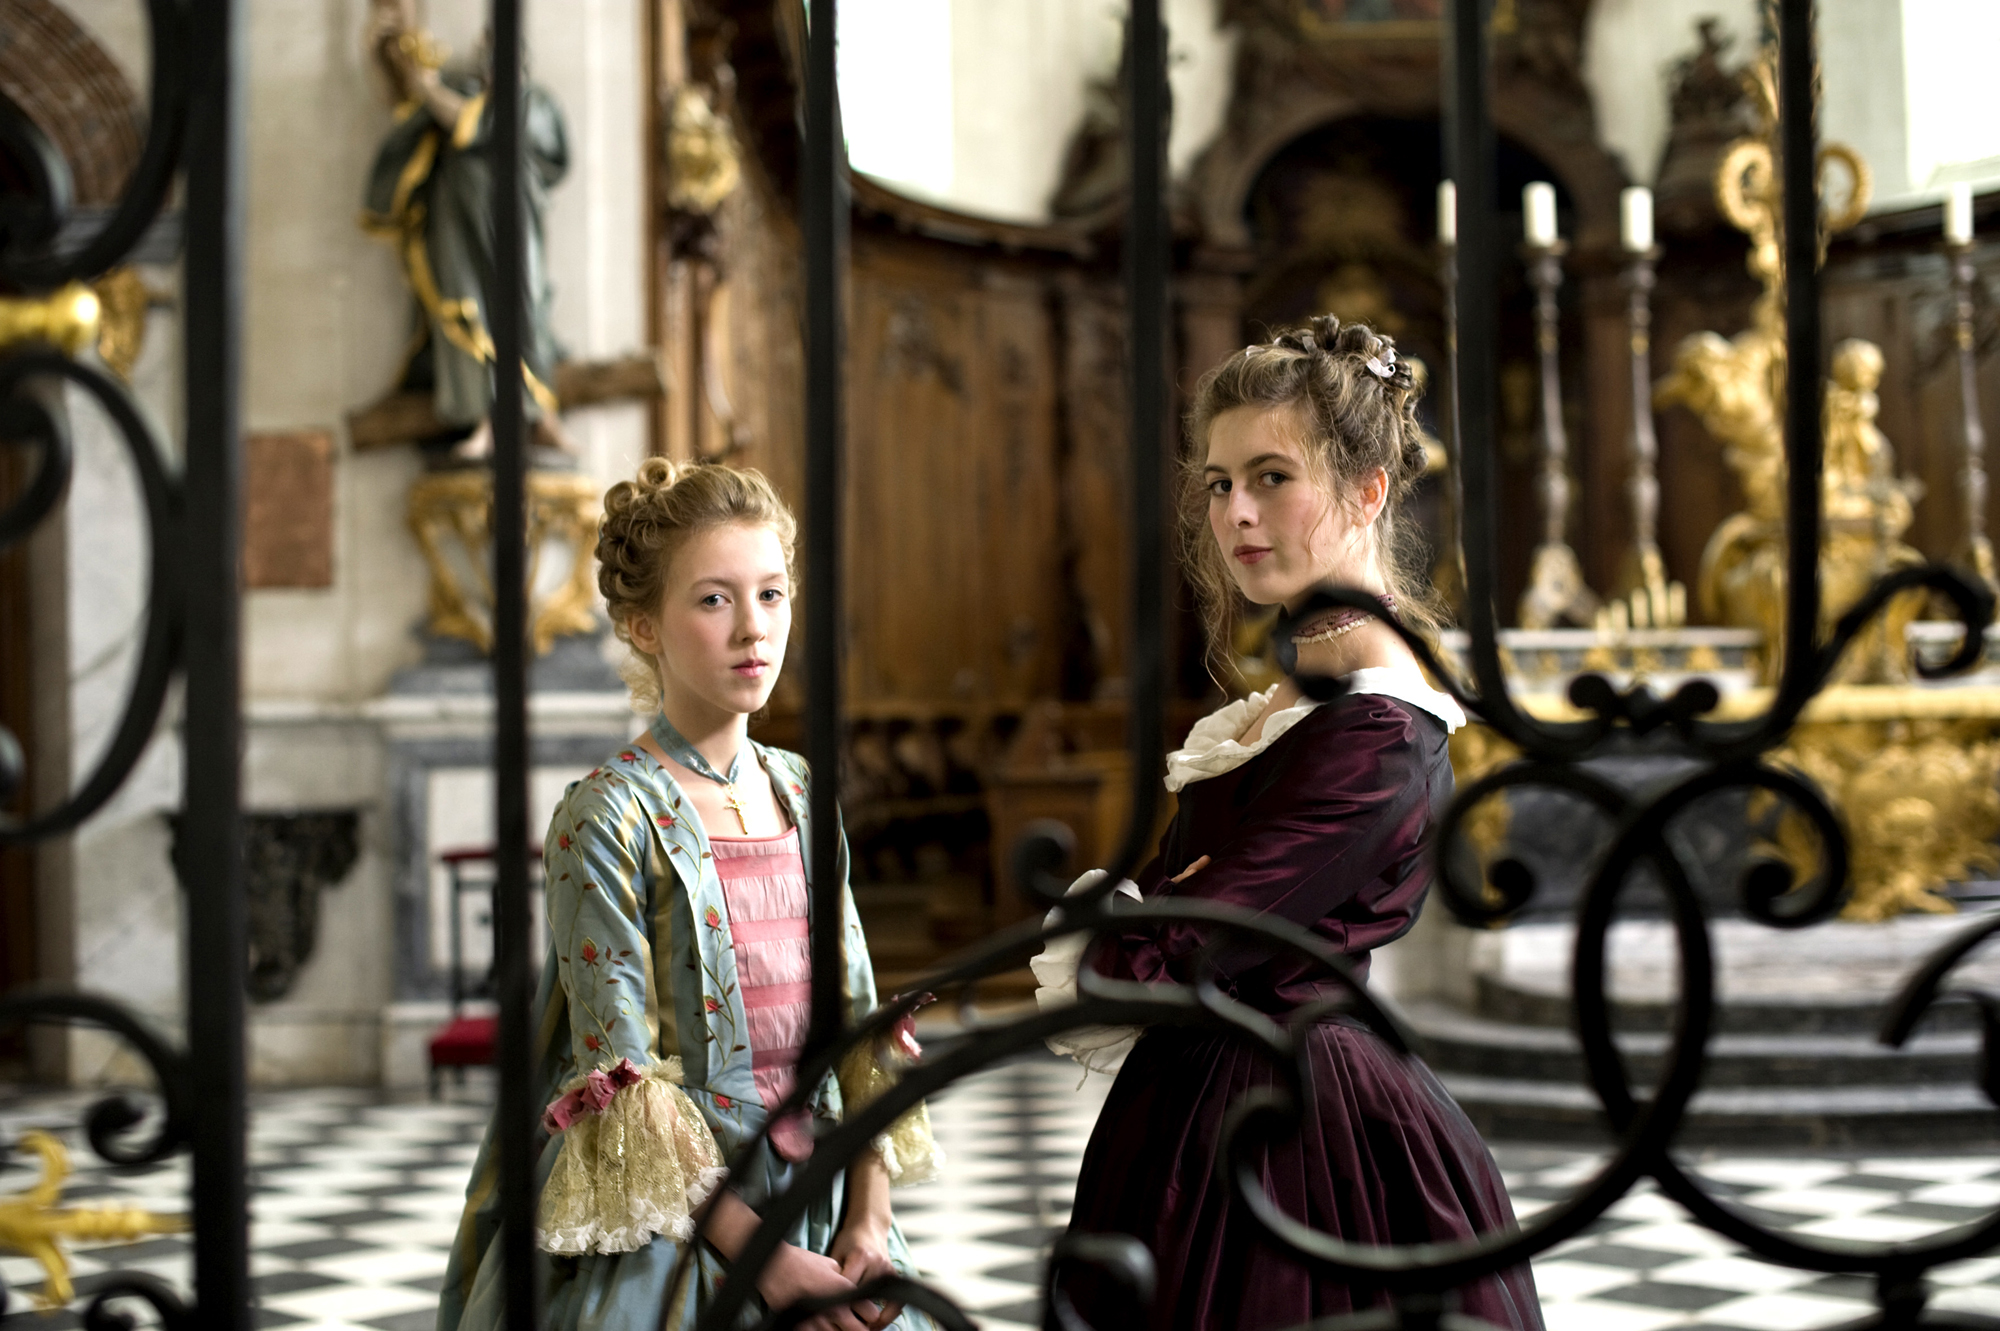 Louise de France (Lisa Féret) and Nannerl Mozart (Marie Féret) in Mozart's  Sister. Film Still courtesy of Music Box - Independent Ethos